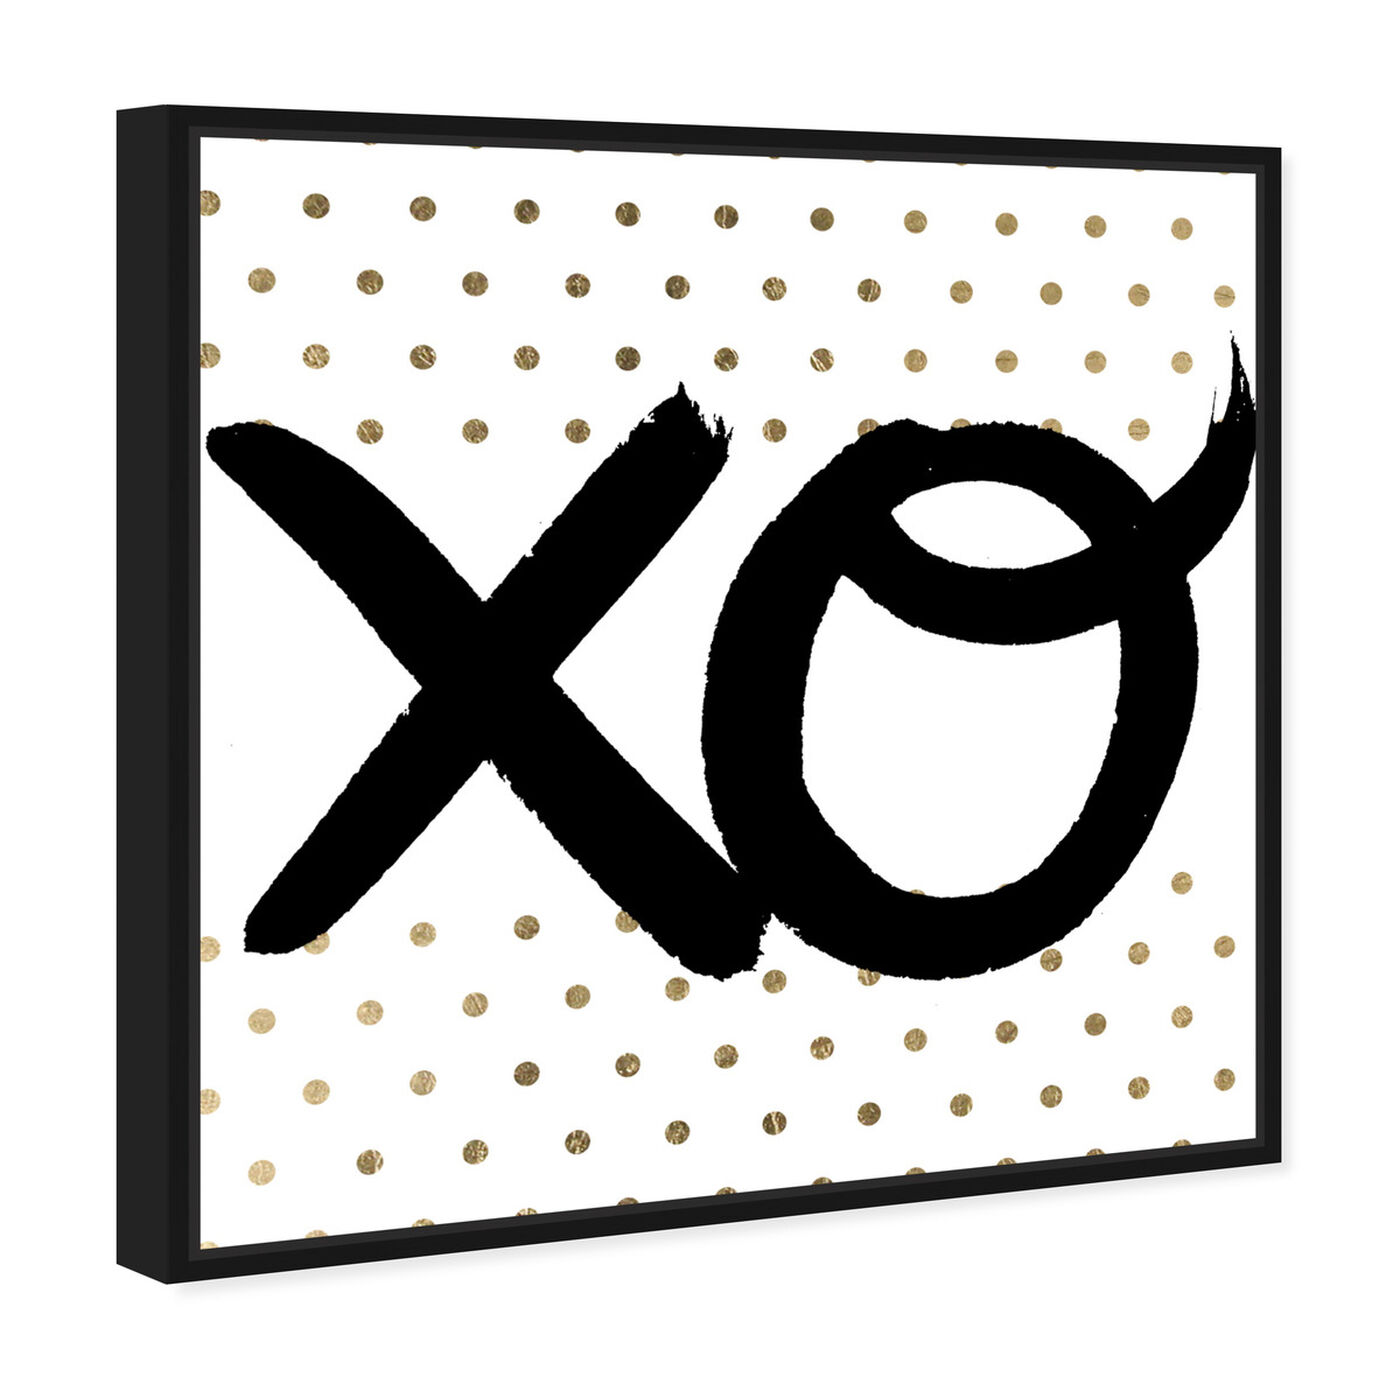 Angled view of XO featuring typography and quotes and signs art.